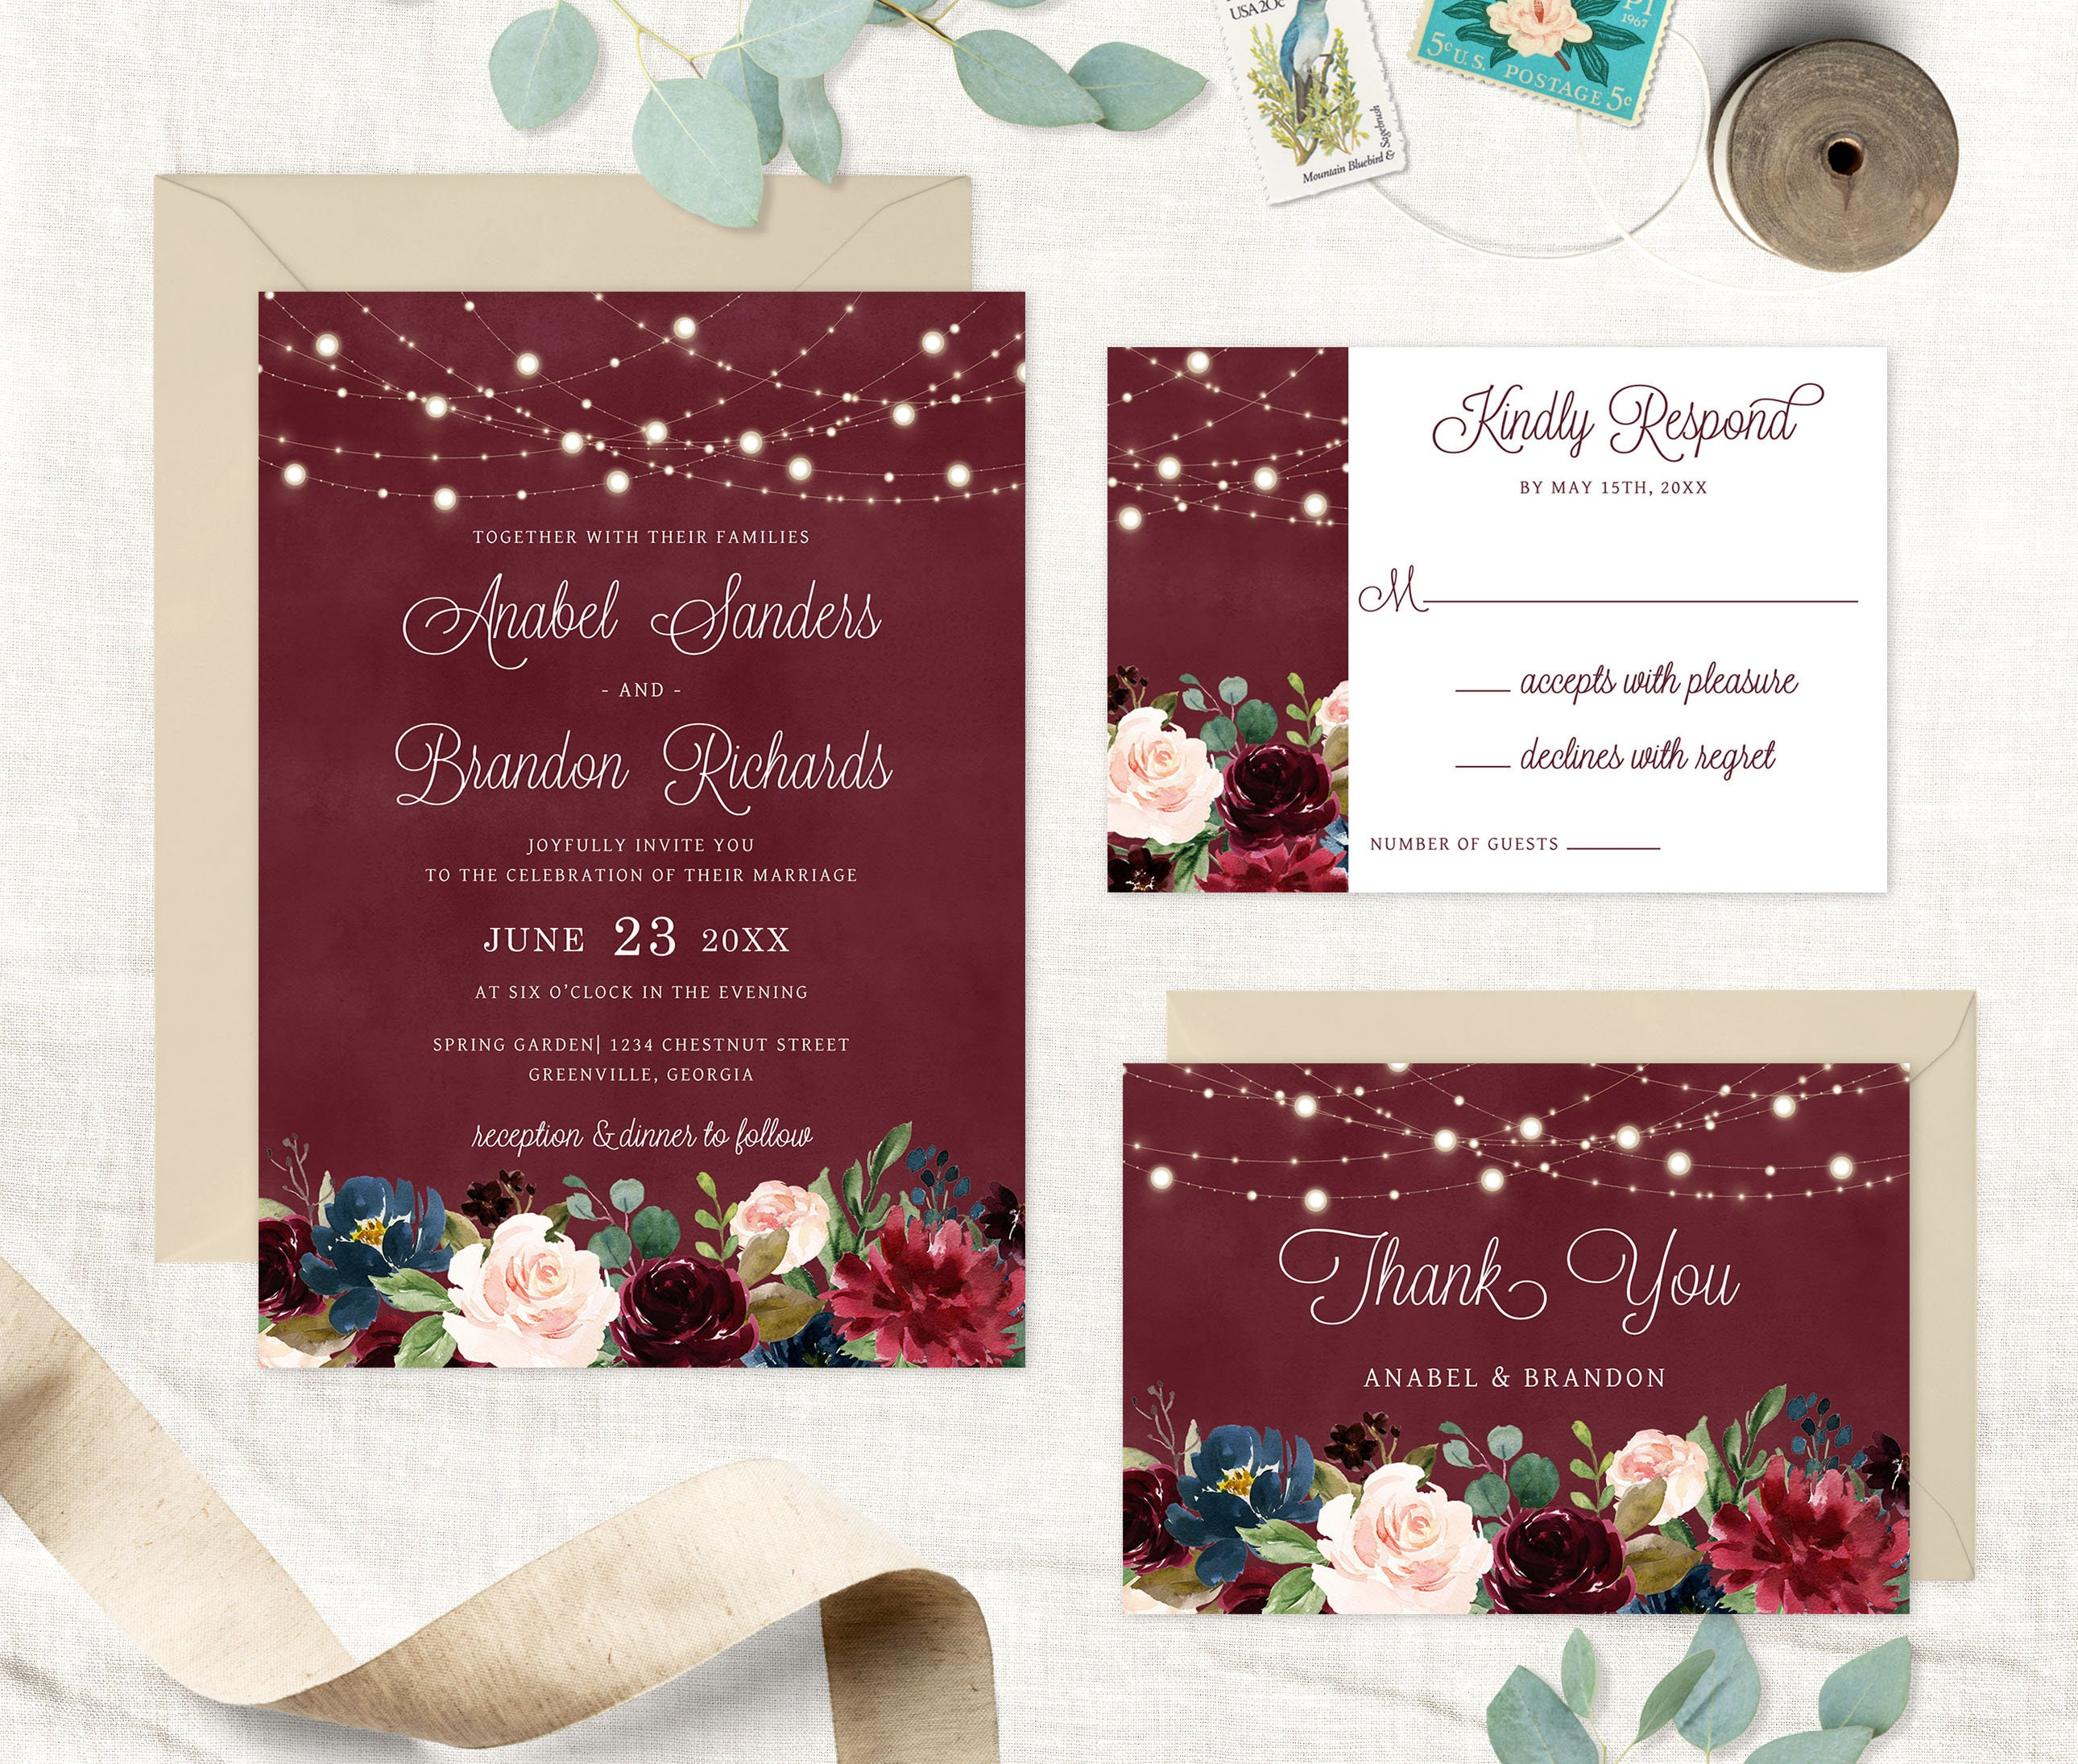 Colorful Burlap Wedding Invites Images - Invitations and ...